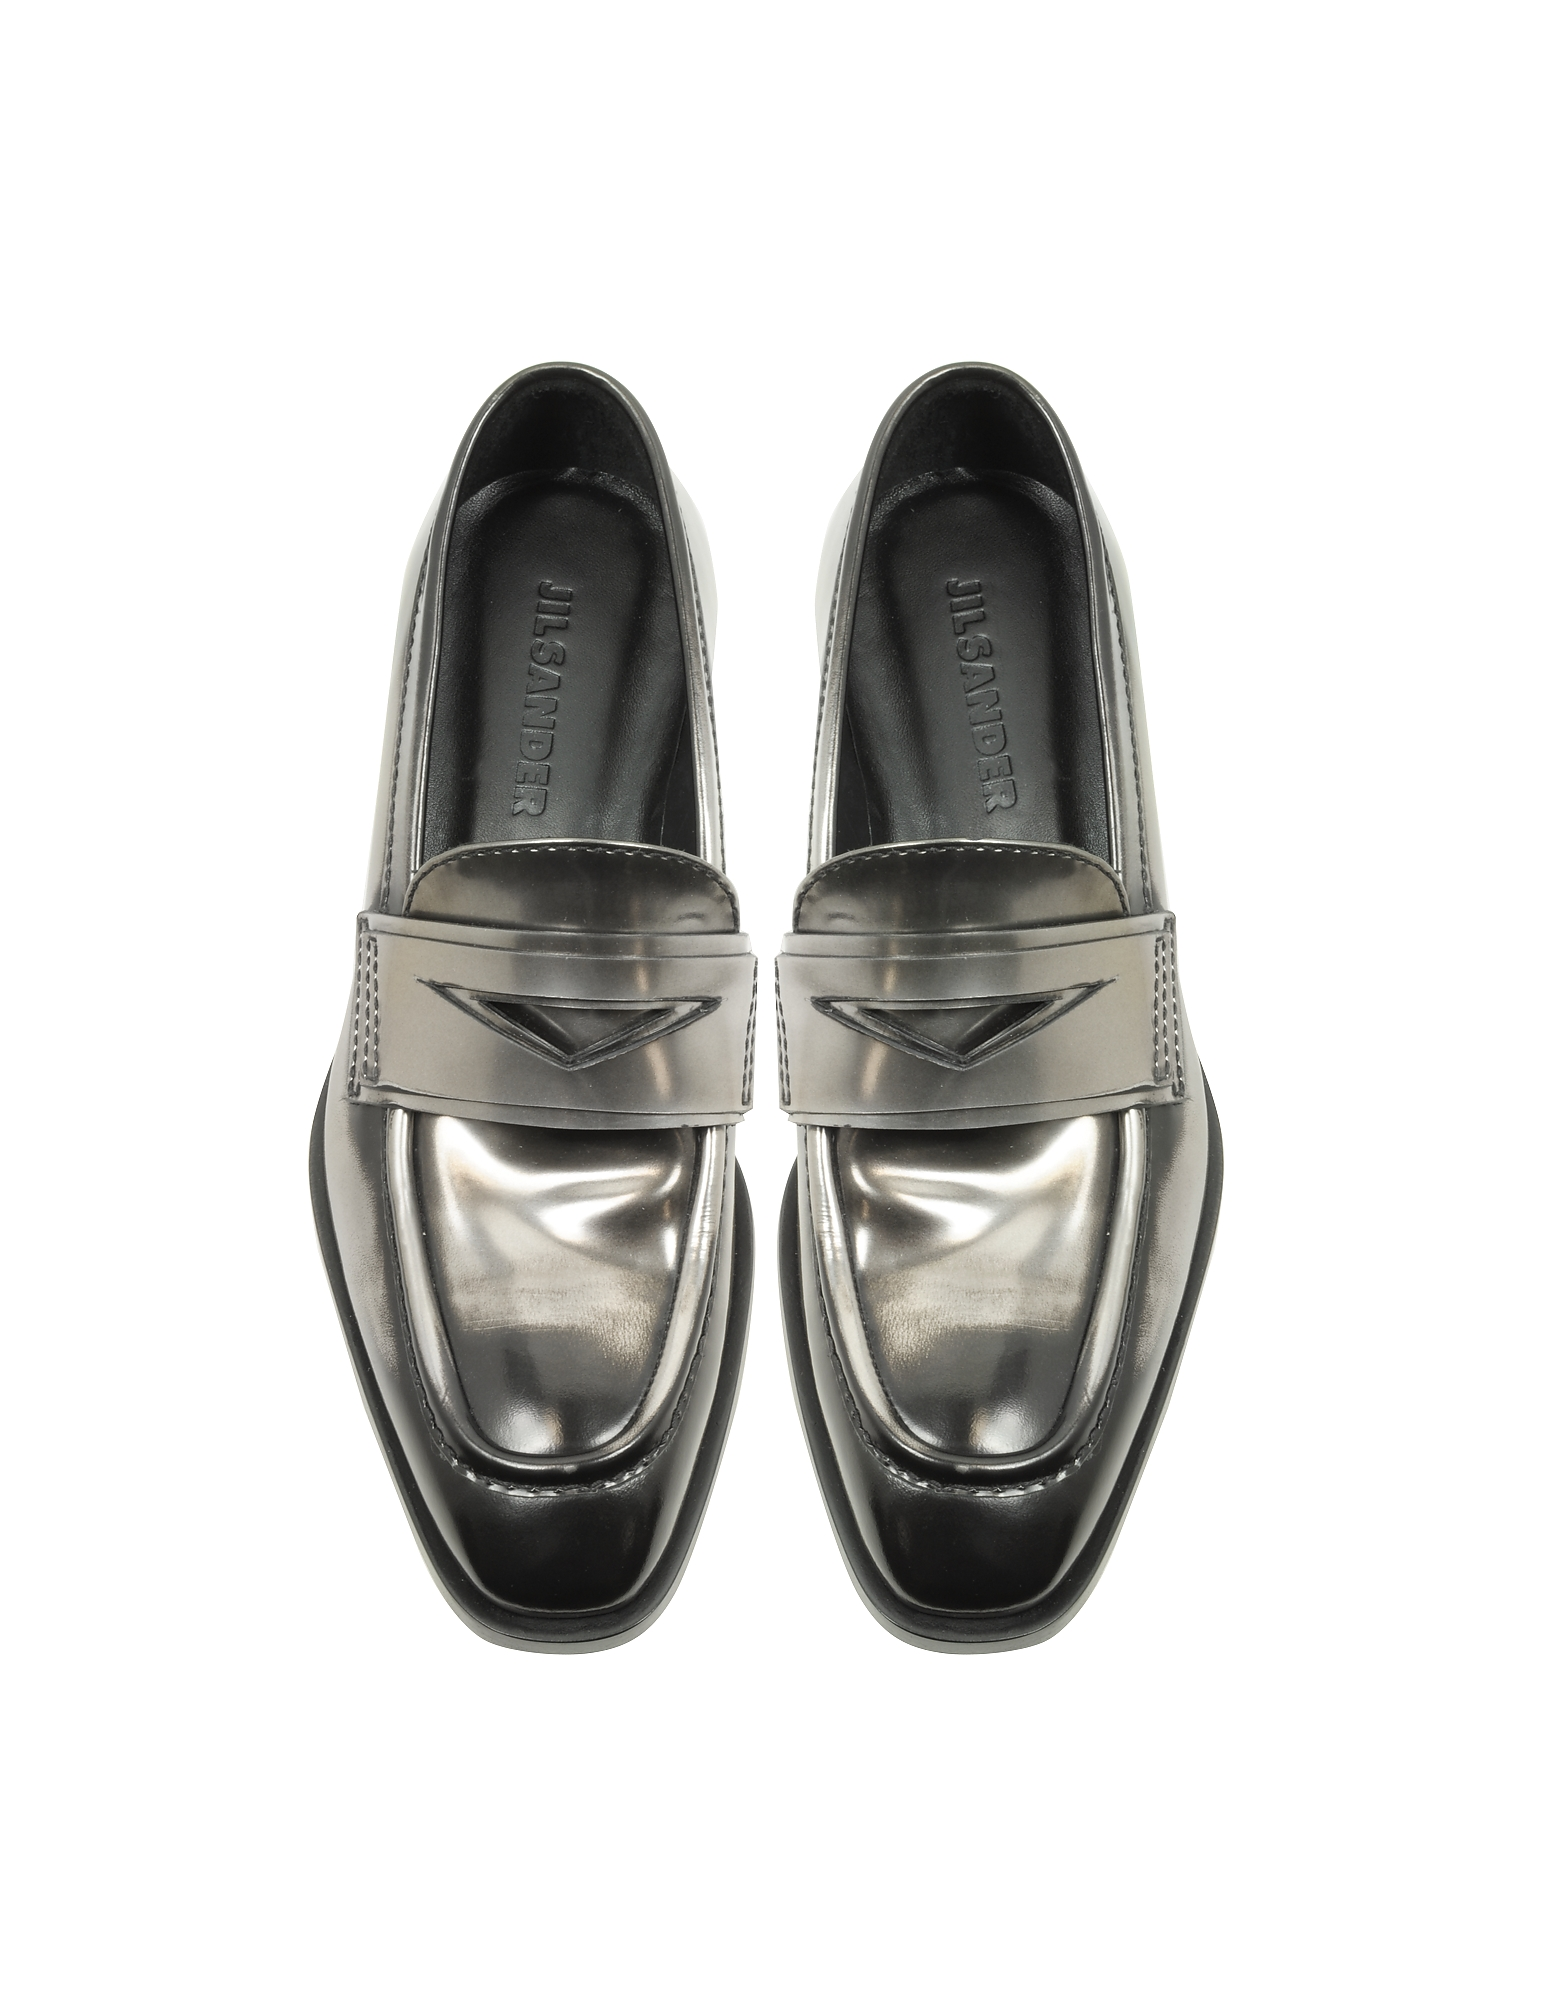 Mirror Black Leather Loafer Shoe от Forzieri INT